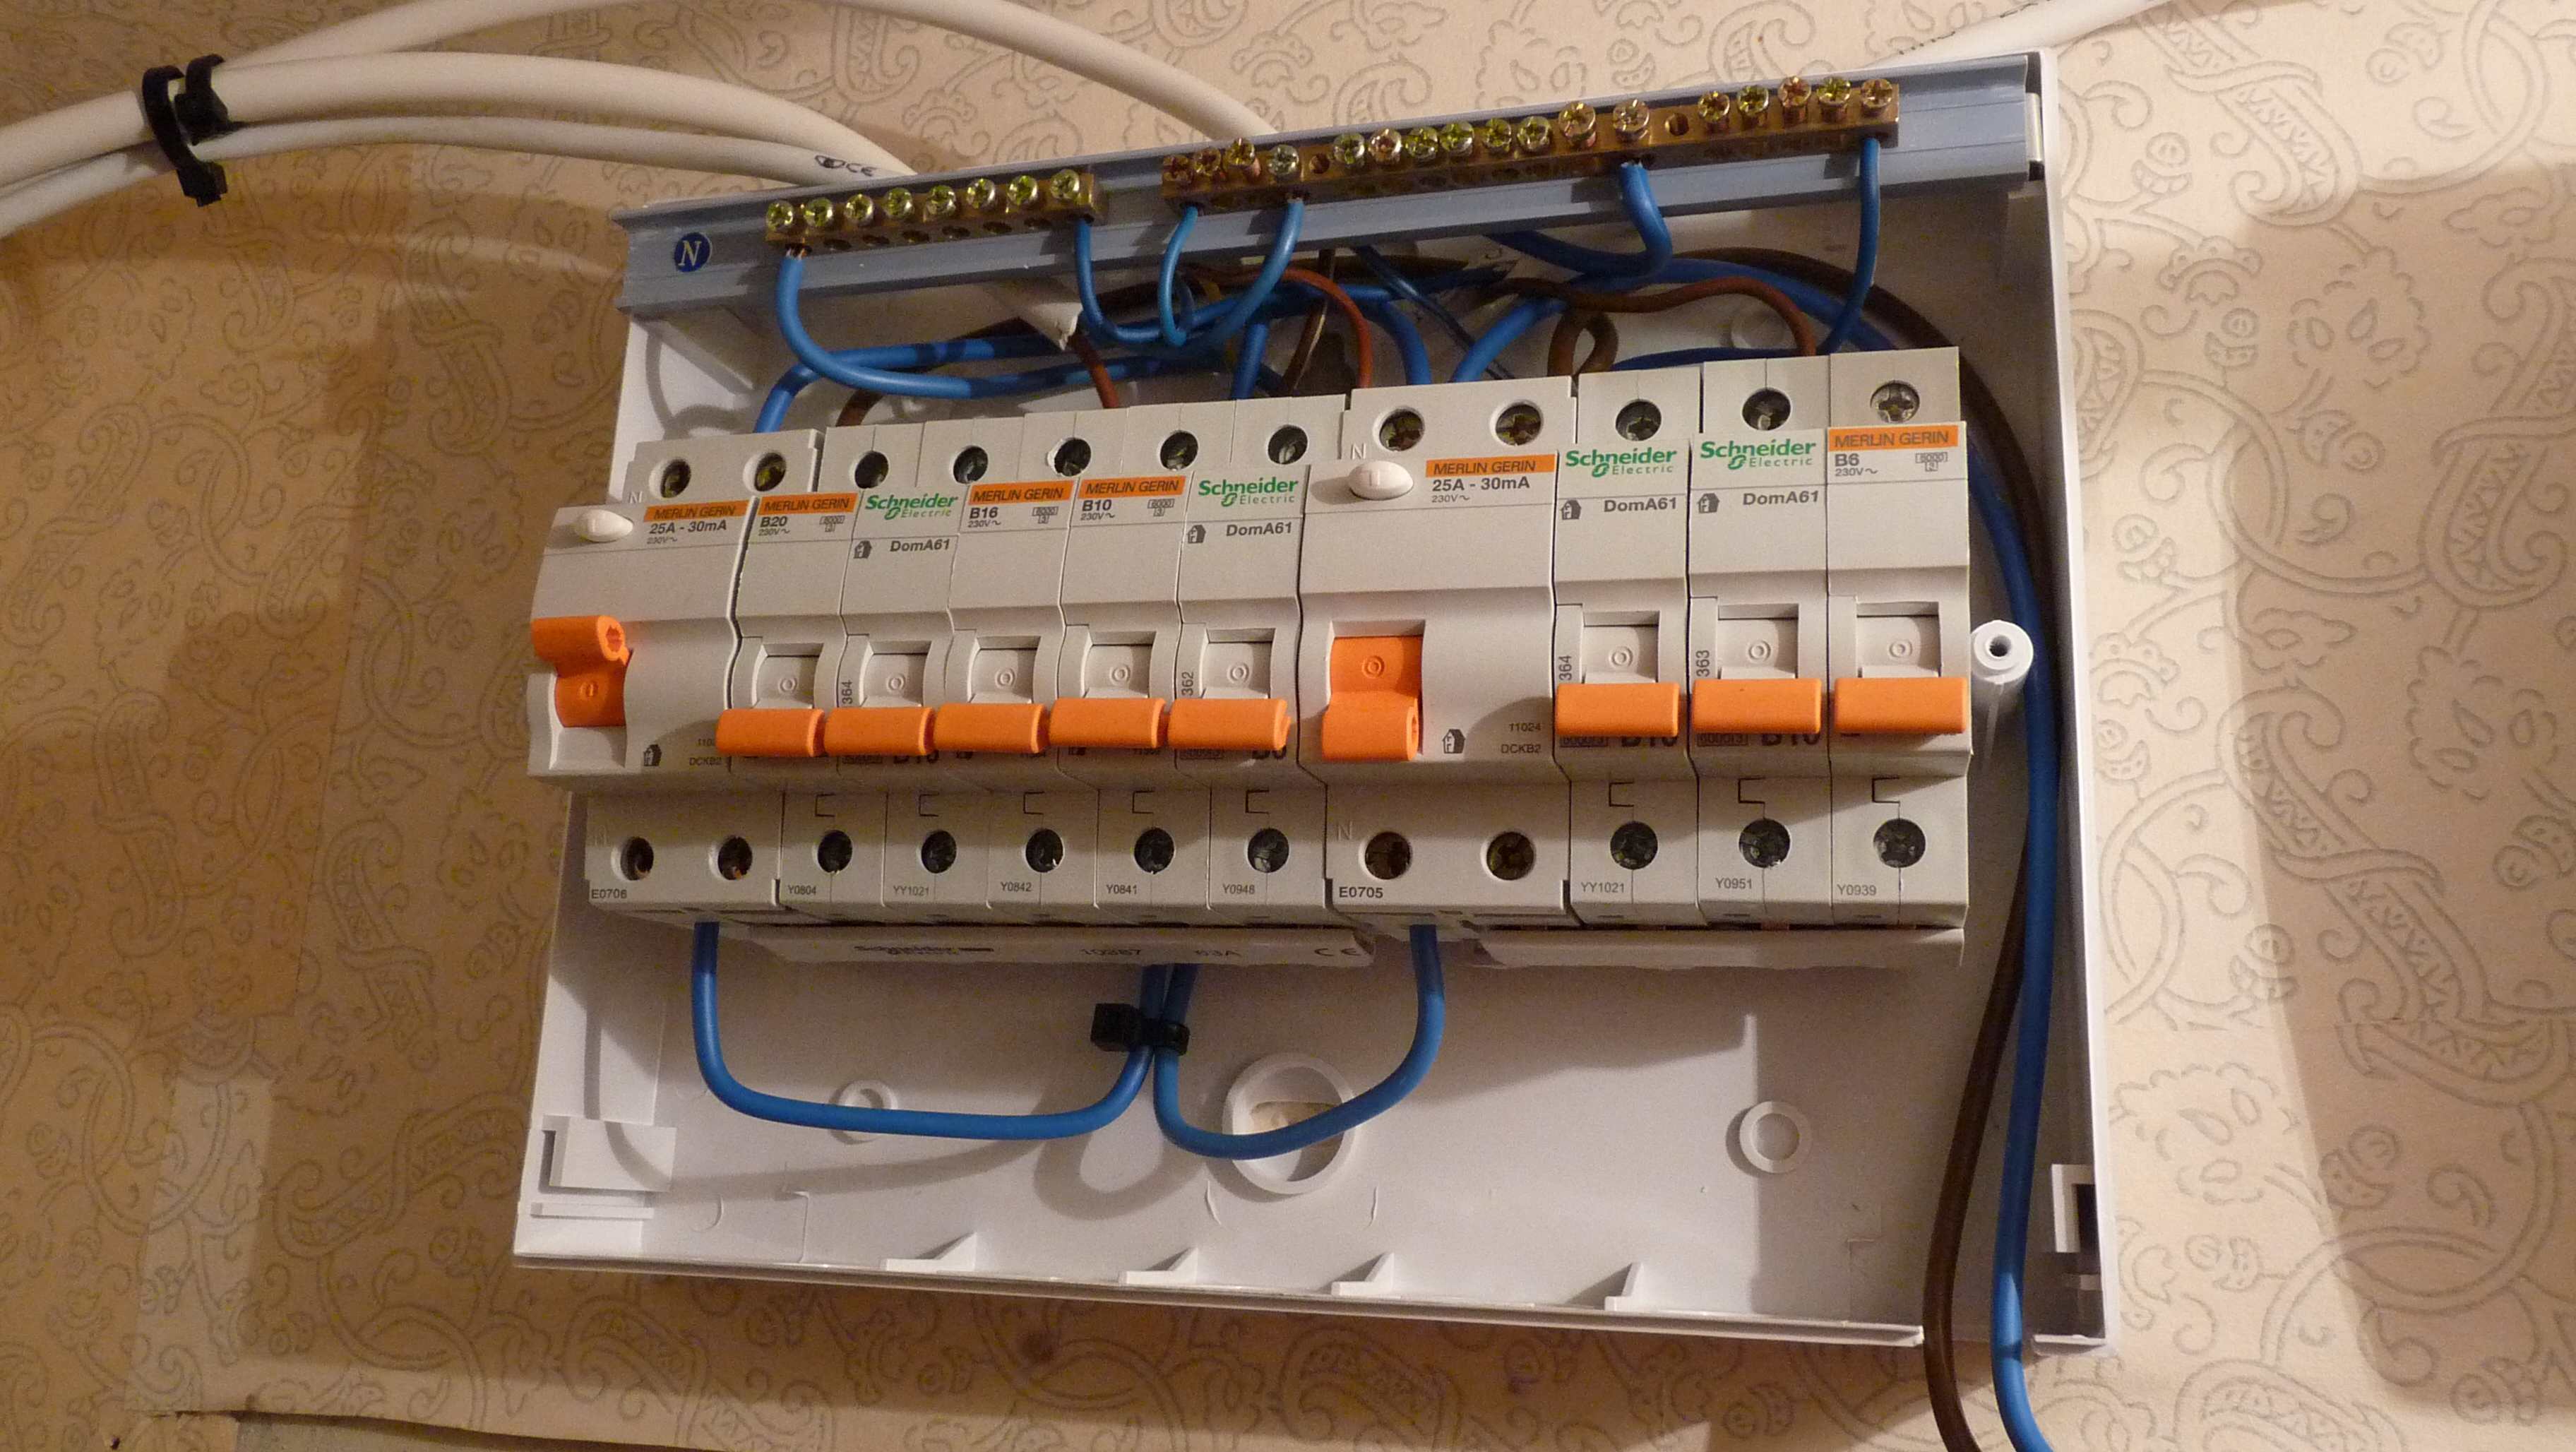 Fuse Box Wiring Content Resource Of Diagram 2011 Sonata Panel File European Wikimedia Commons Rh Org